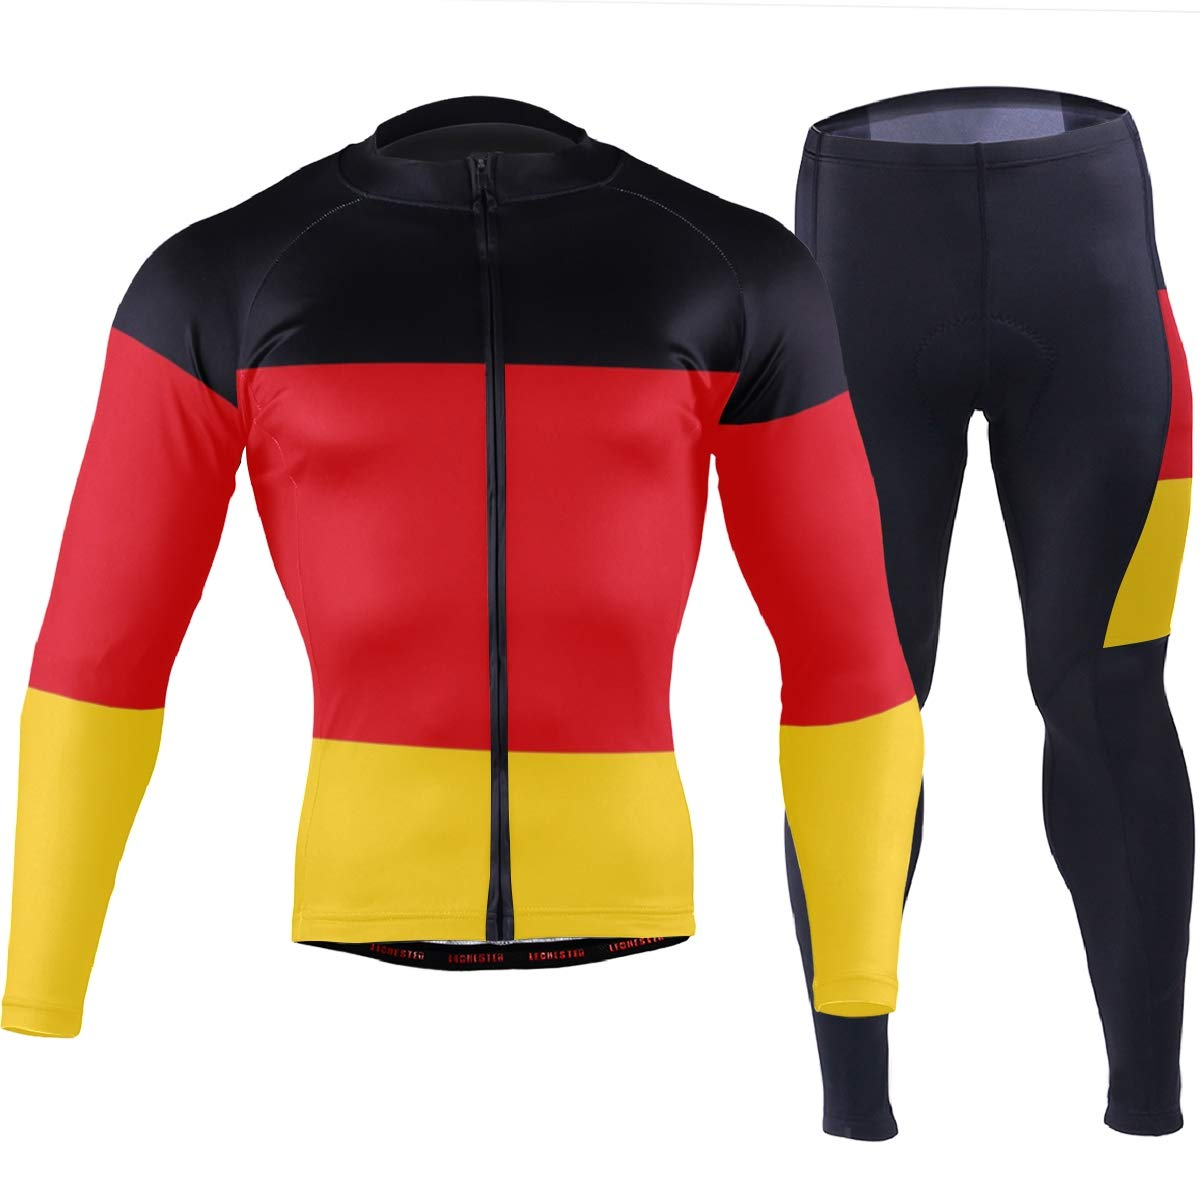 CHINEIN Men's Cycling Jersey Long Sleeve with 3 Rear Pockets Suit German Flag by CHINEIN